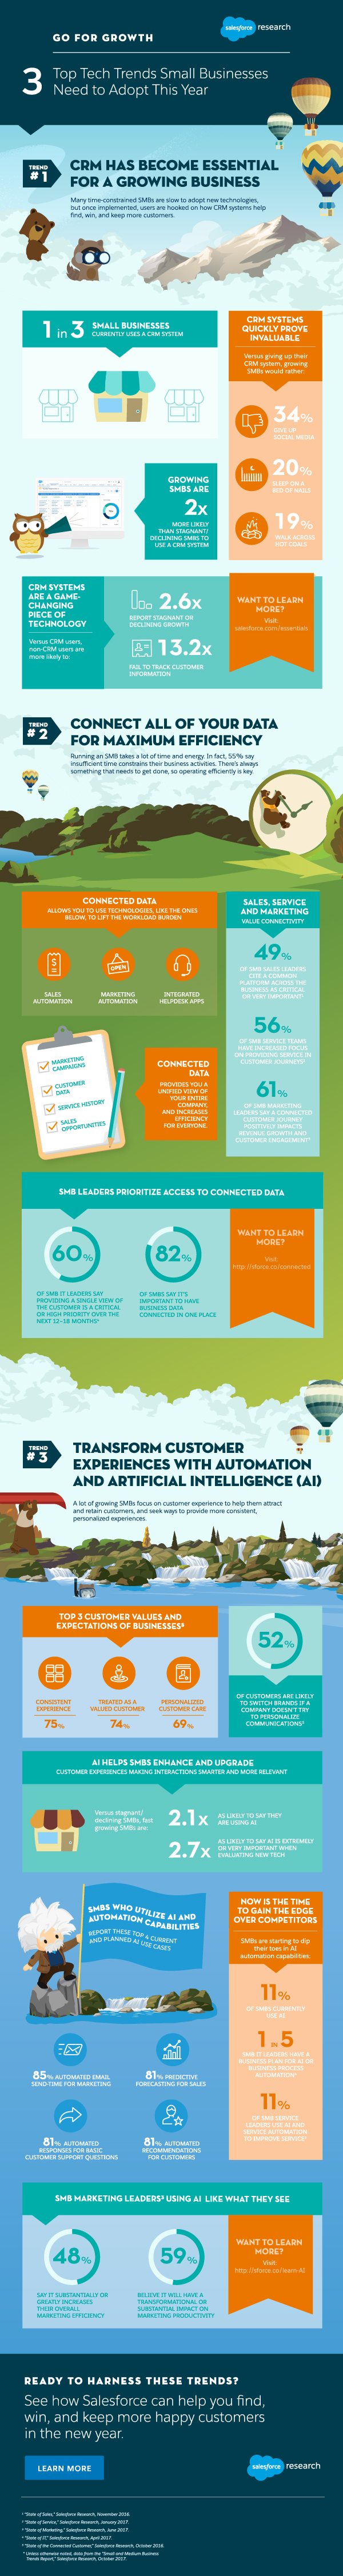 Infographic: 3 Trends That'll Transform Small Business Growth in 2018